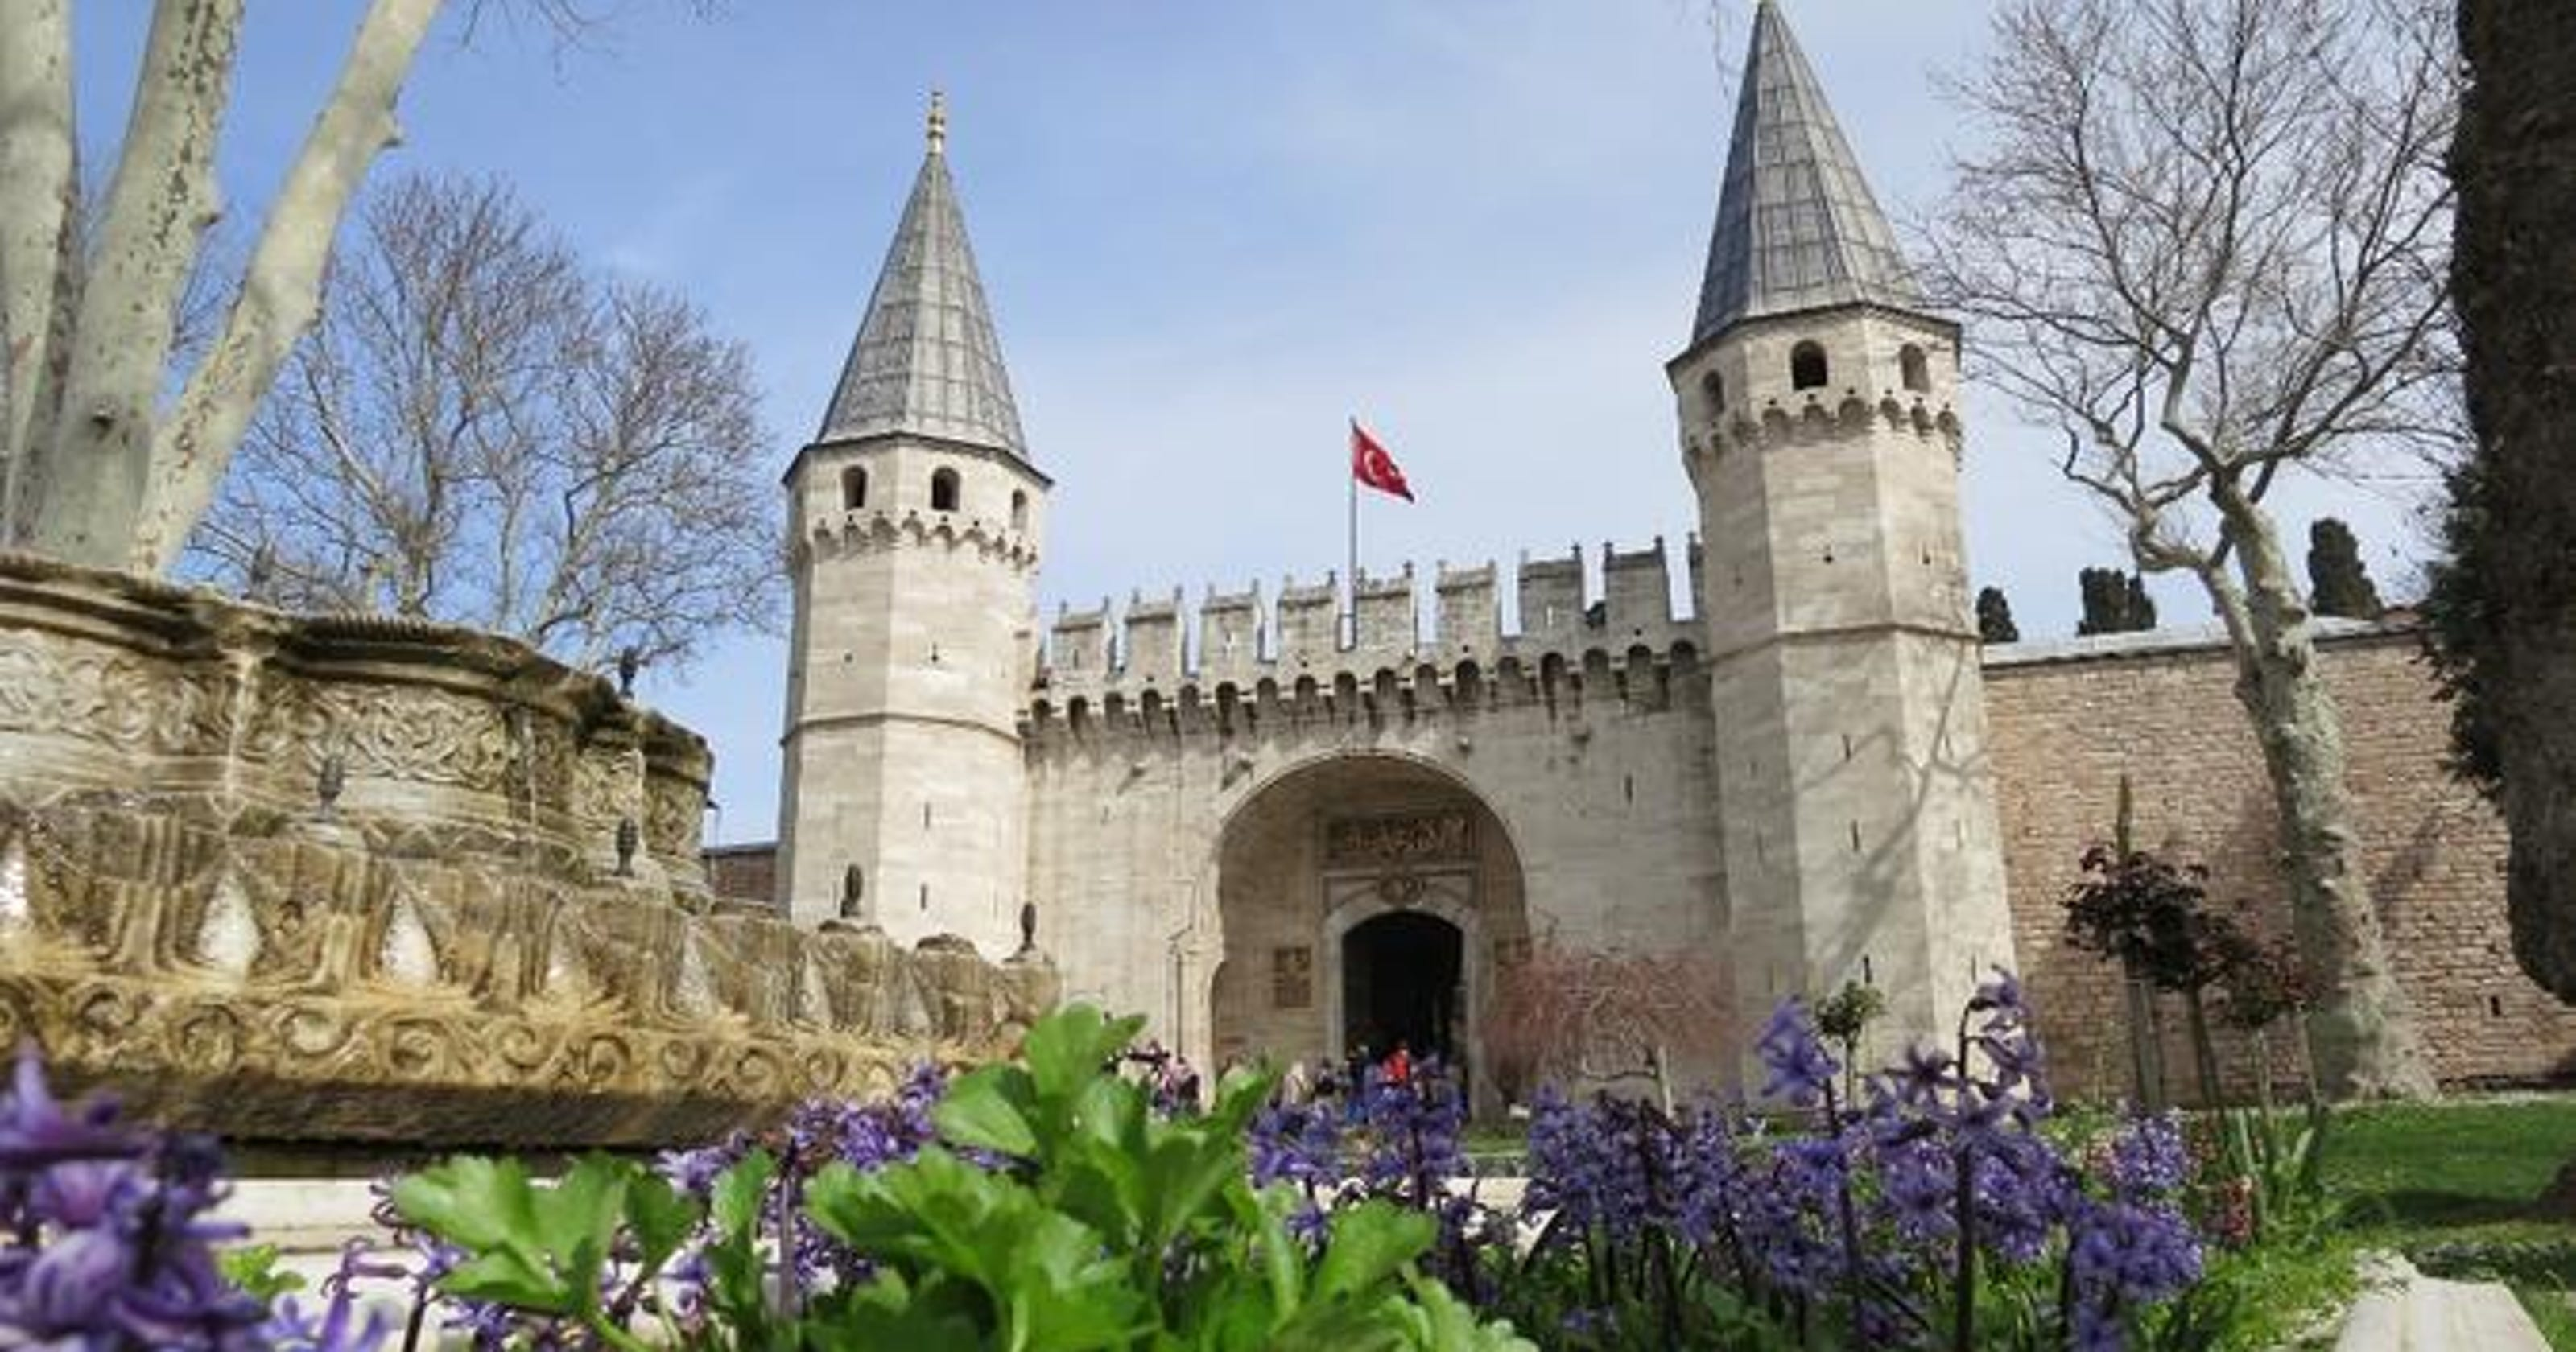 Travel to Turkey is cheaper because of the currency crisis.